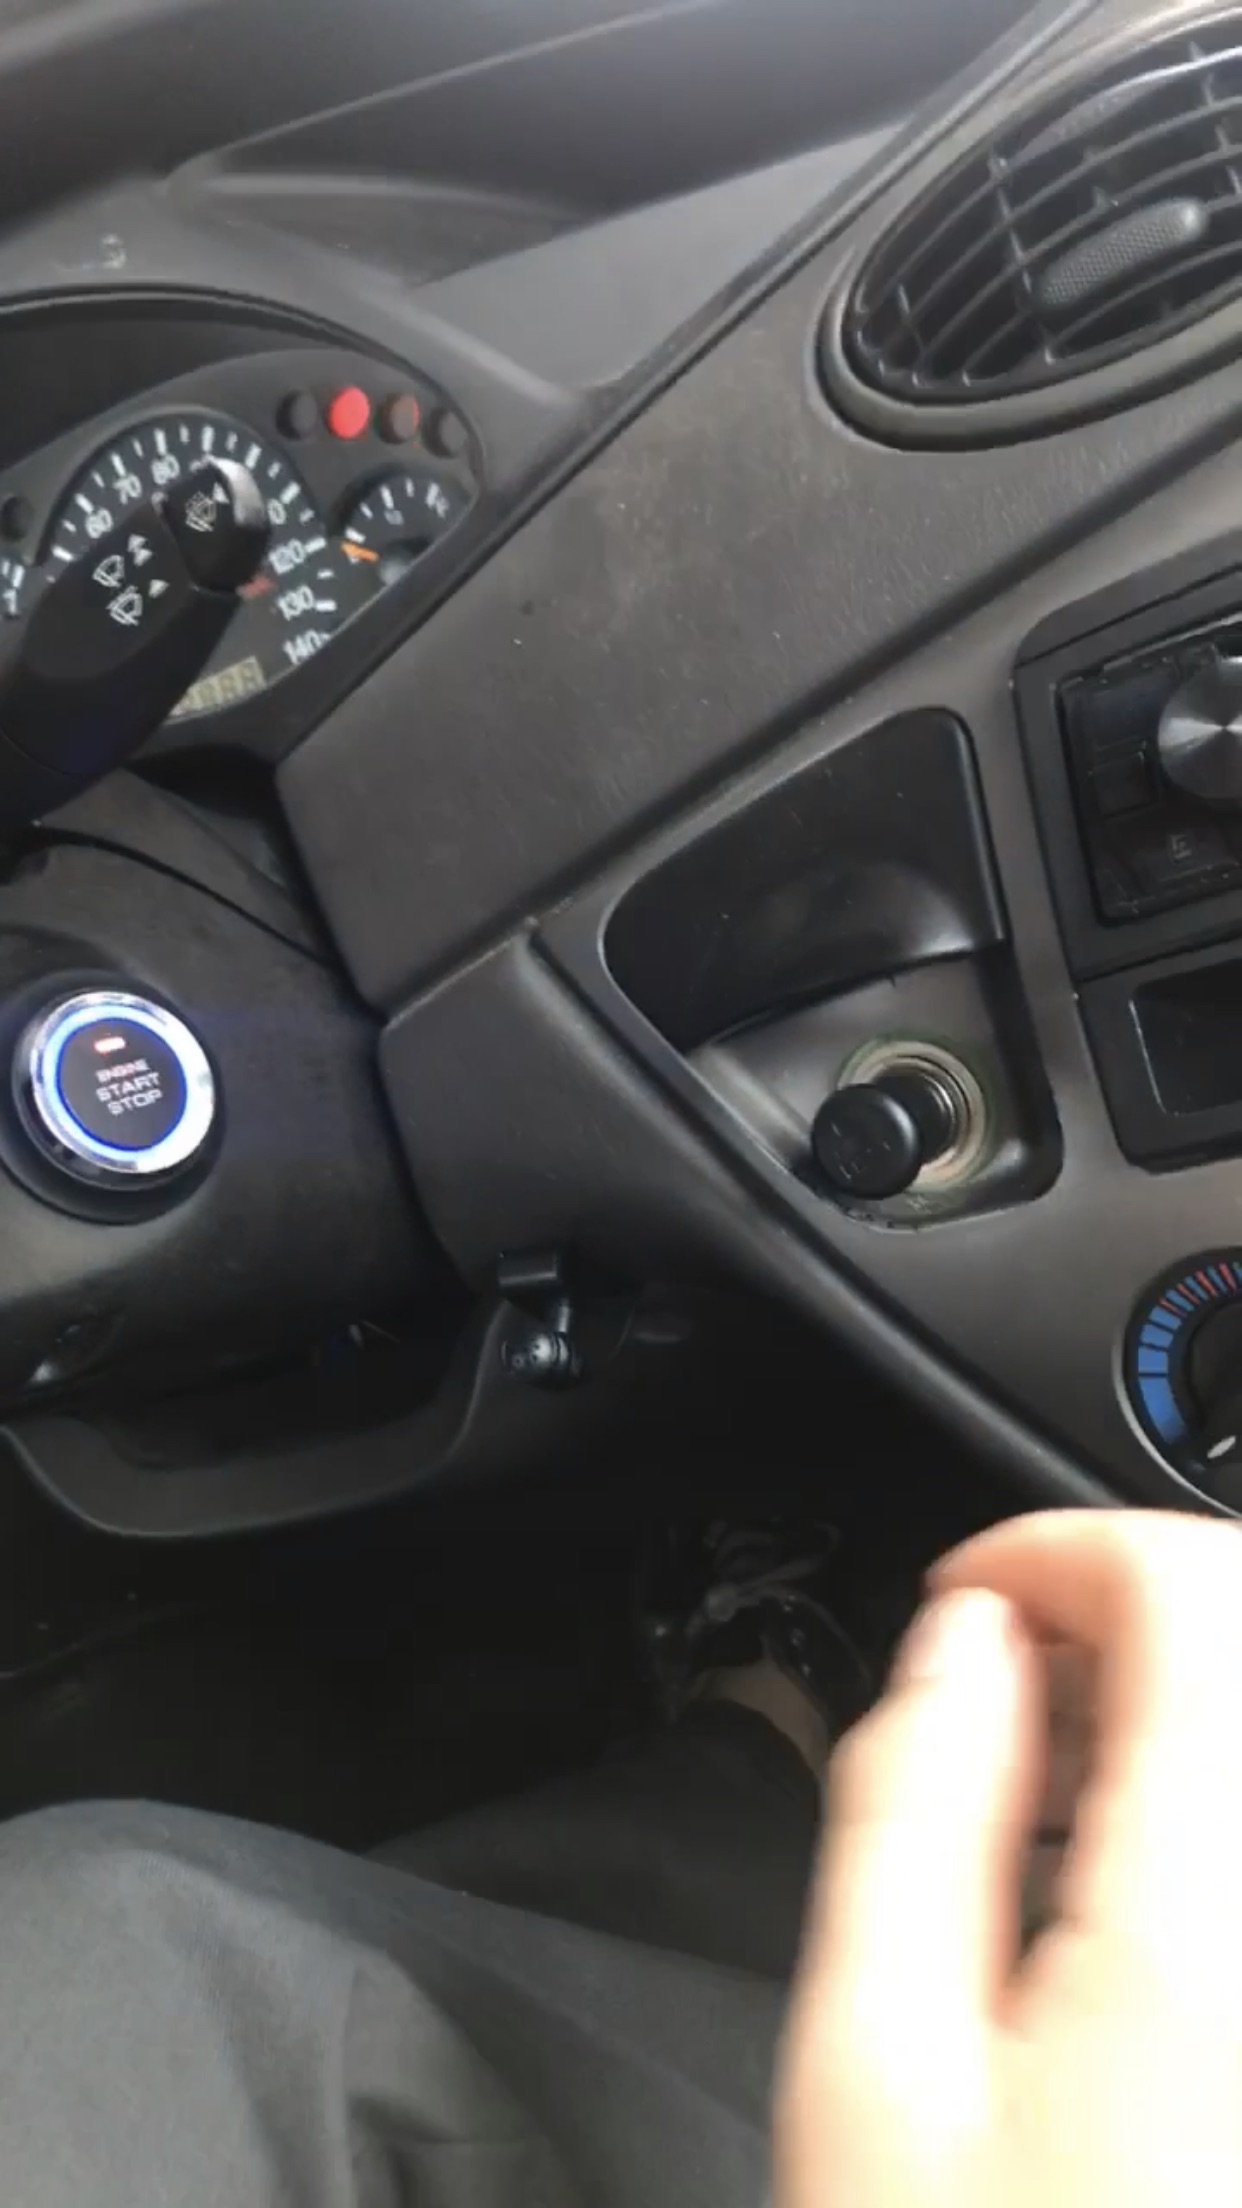 REAL push start in an '01 ZX3. Pics included.-f4928987-cf40-4d3c-8e0d-ab19233c0220_1557670964681.jpeg